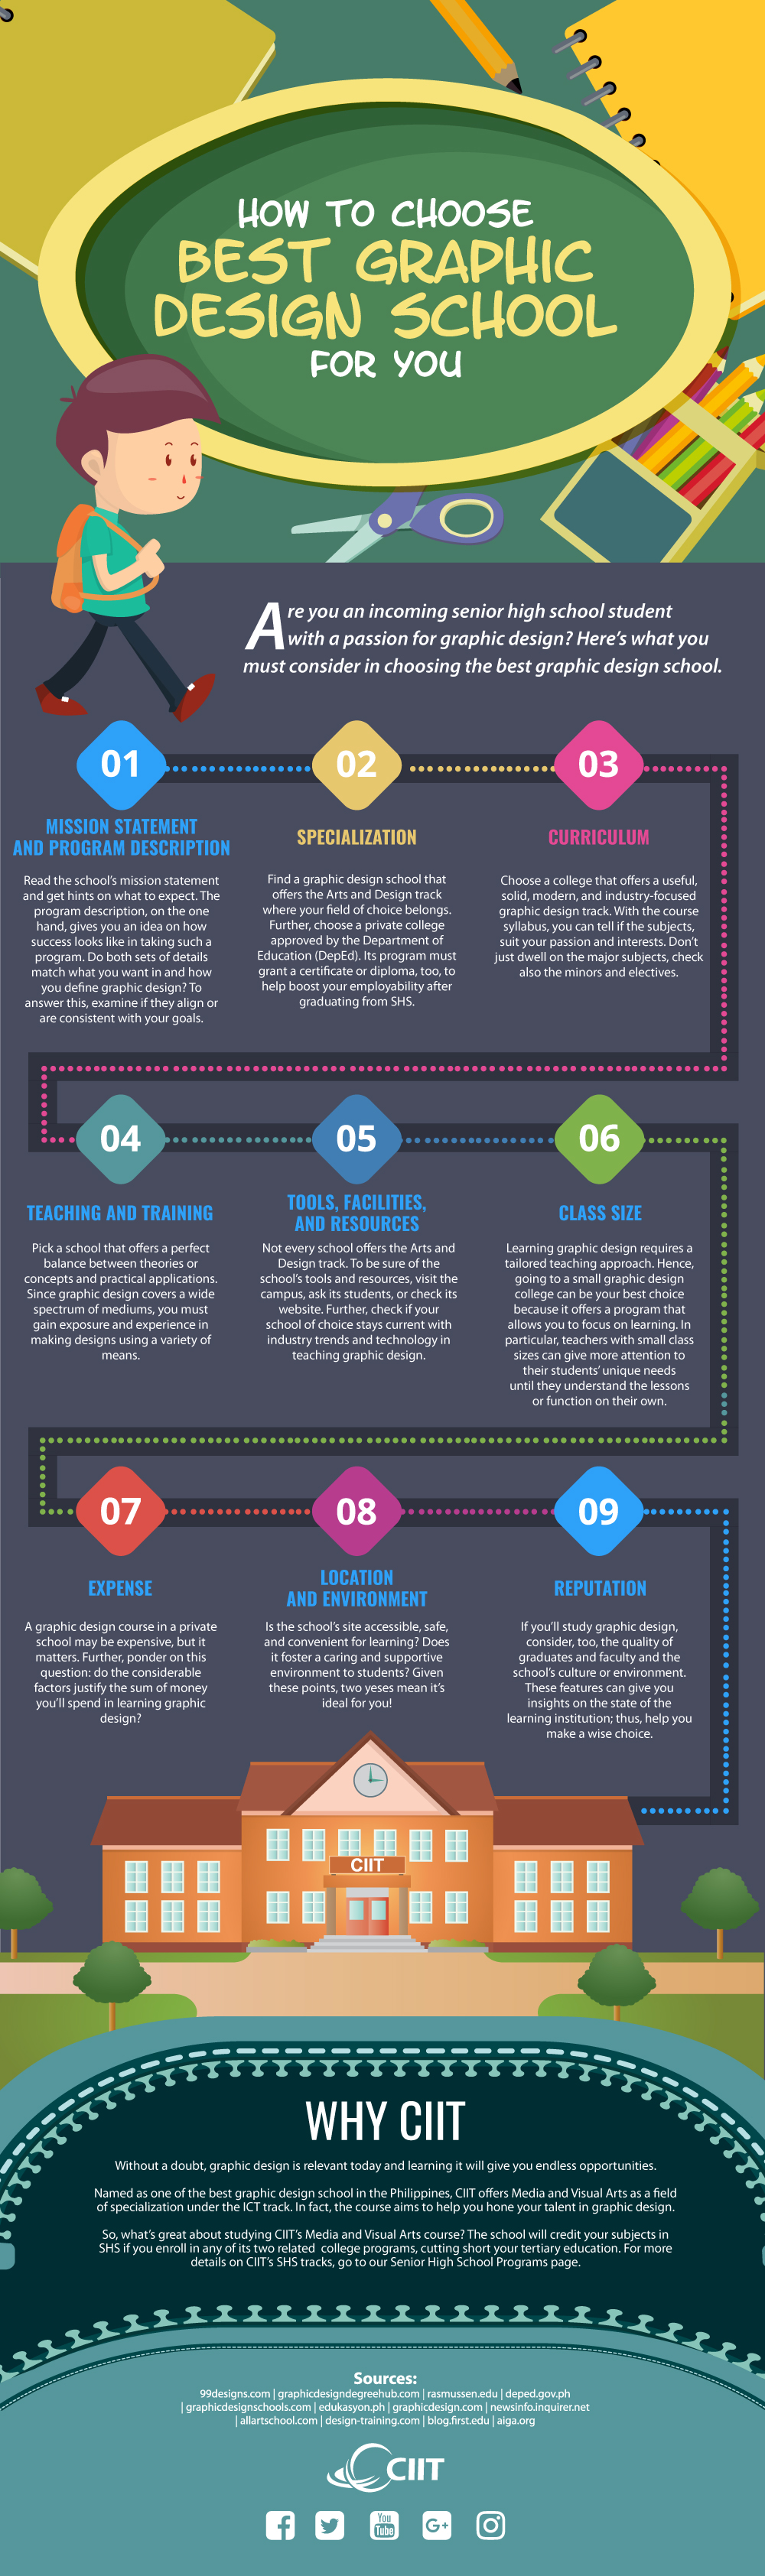 How to Choose the Best Graphic Design School for You - Infographic